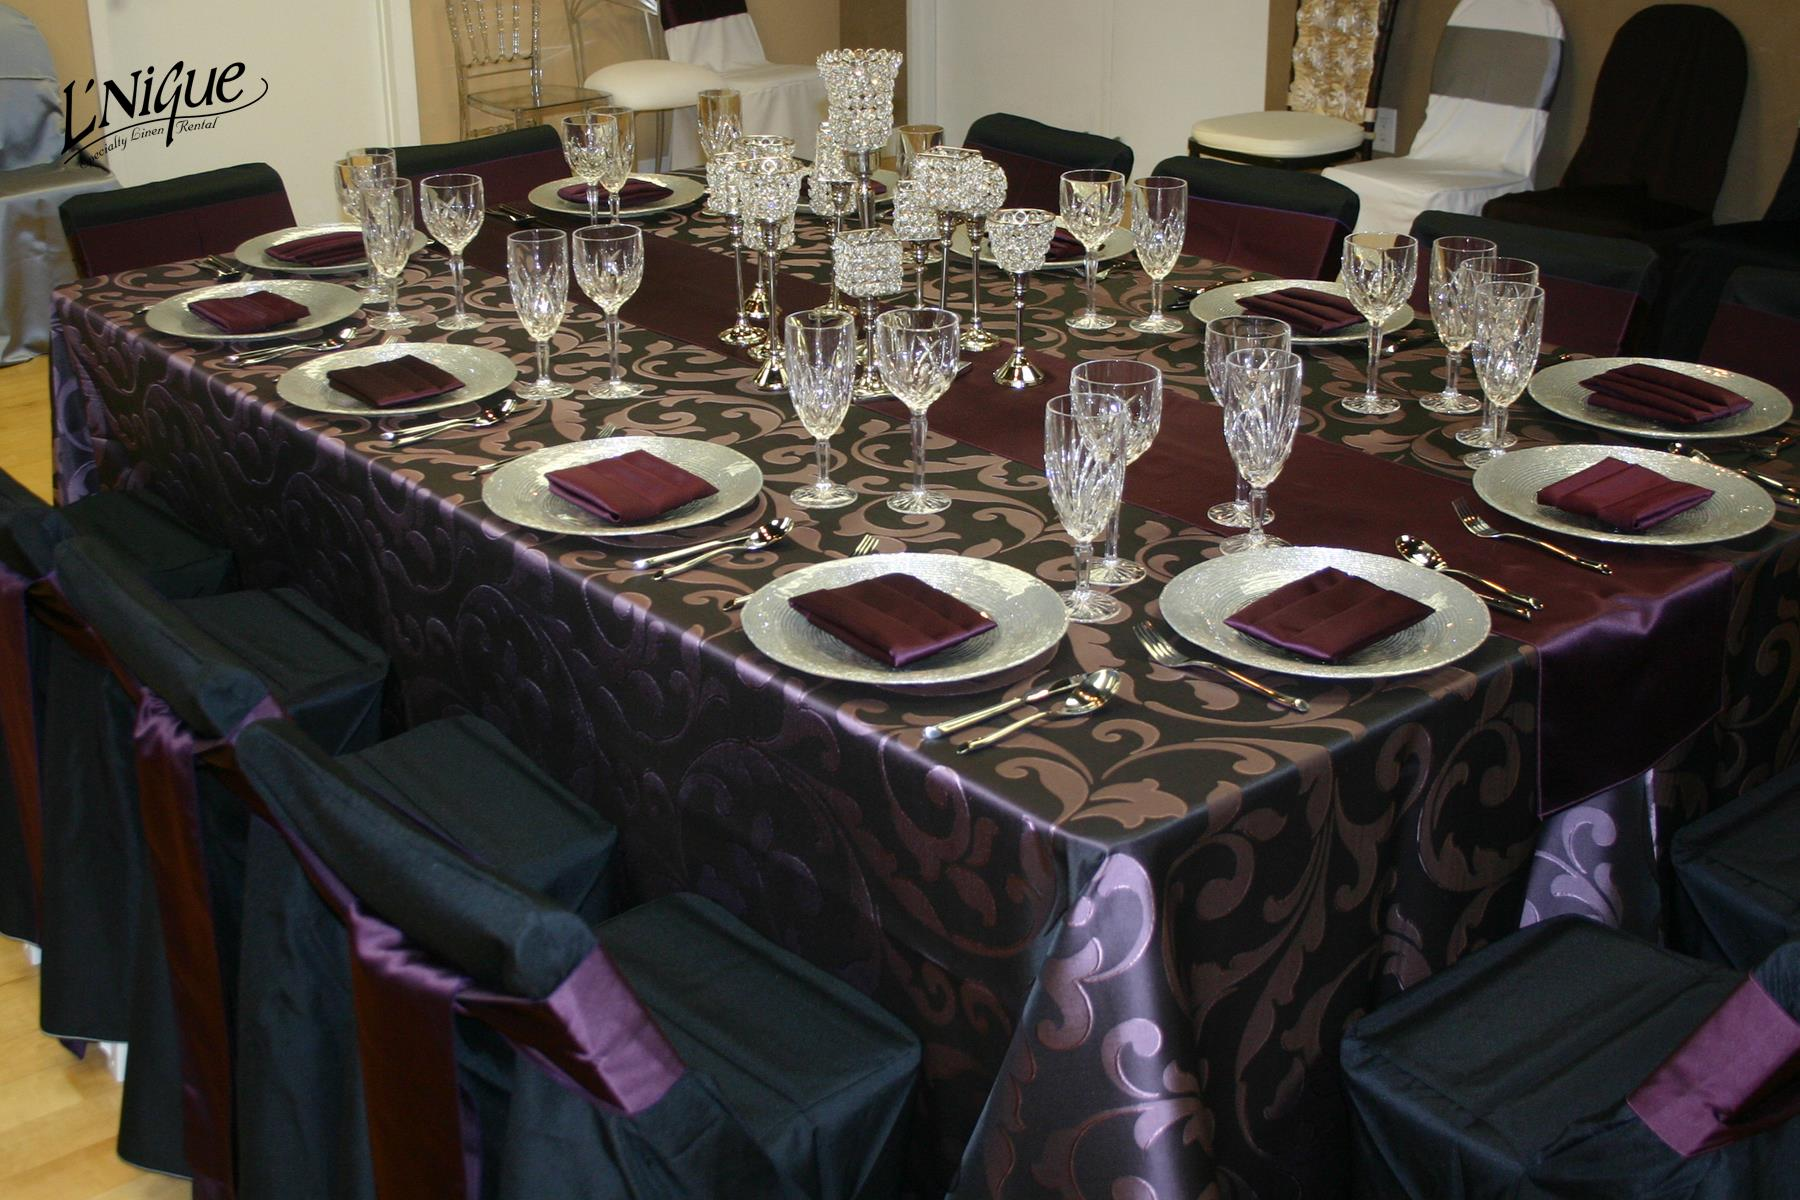 black ruched chair covers and sashes hire plum laura damask tablecloth - specialty linen rental